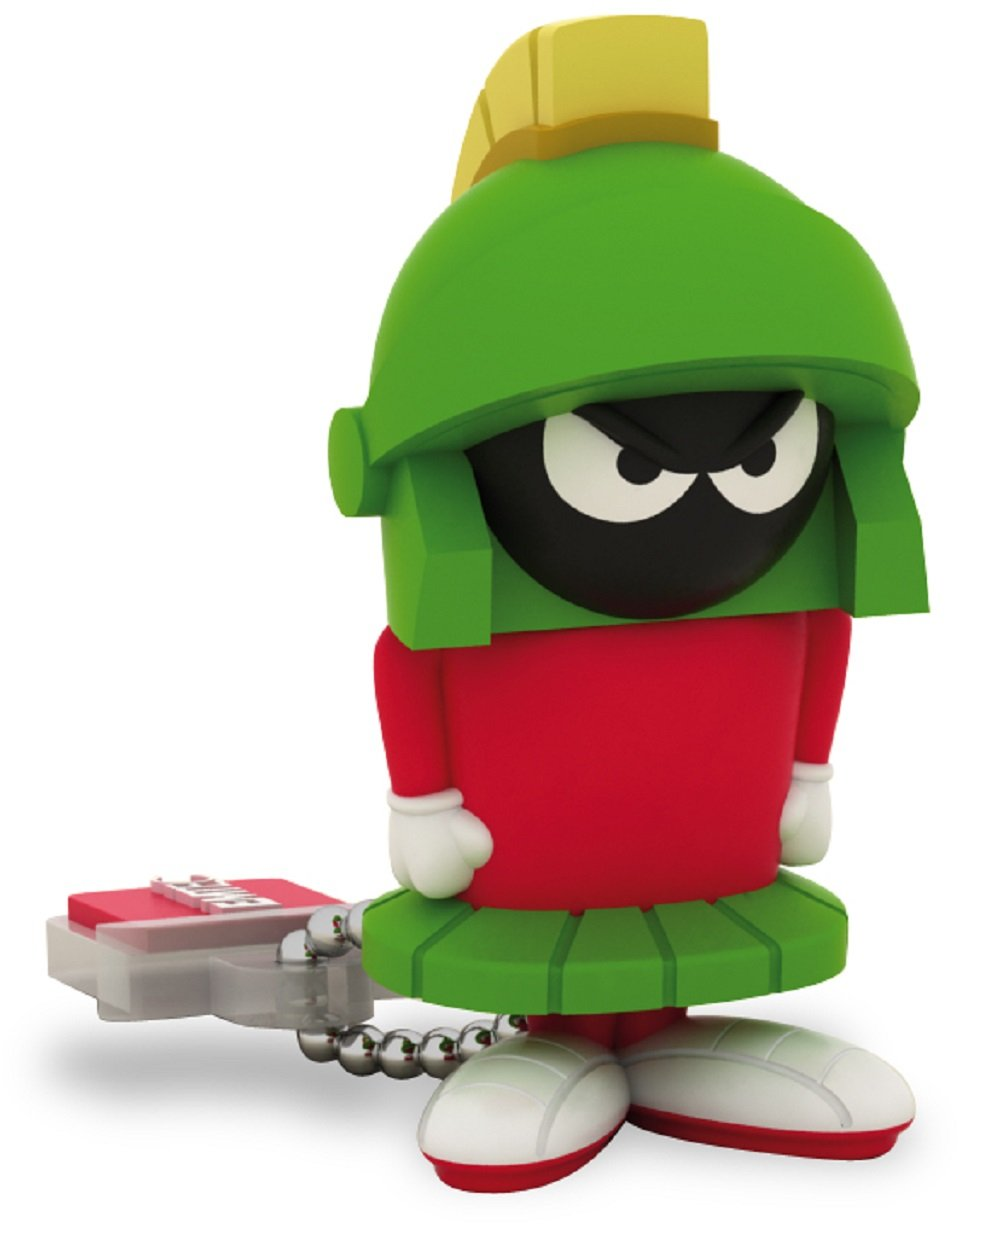 Looney Tunes 8 GB USB 2.0 Flash Drive, Marvin the Martian